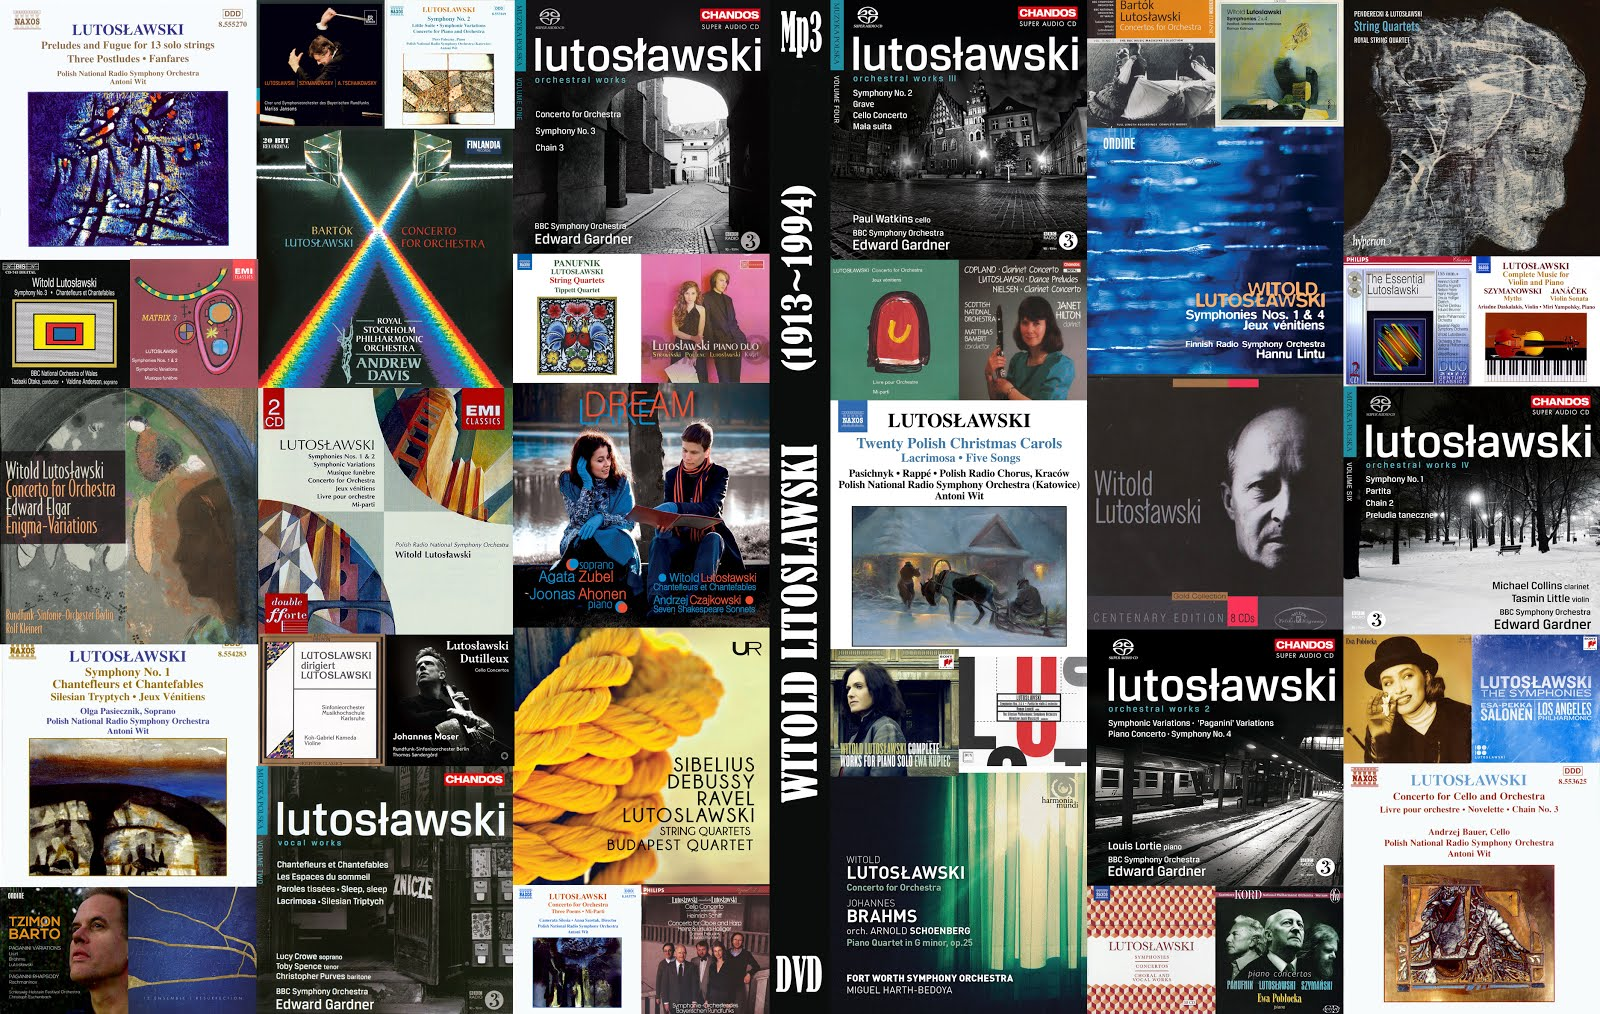 Witold Lutoslawski (1913-1994)